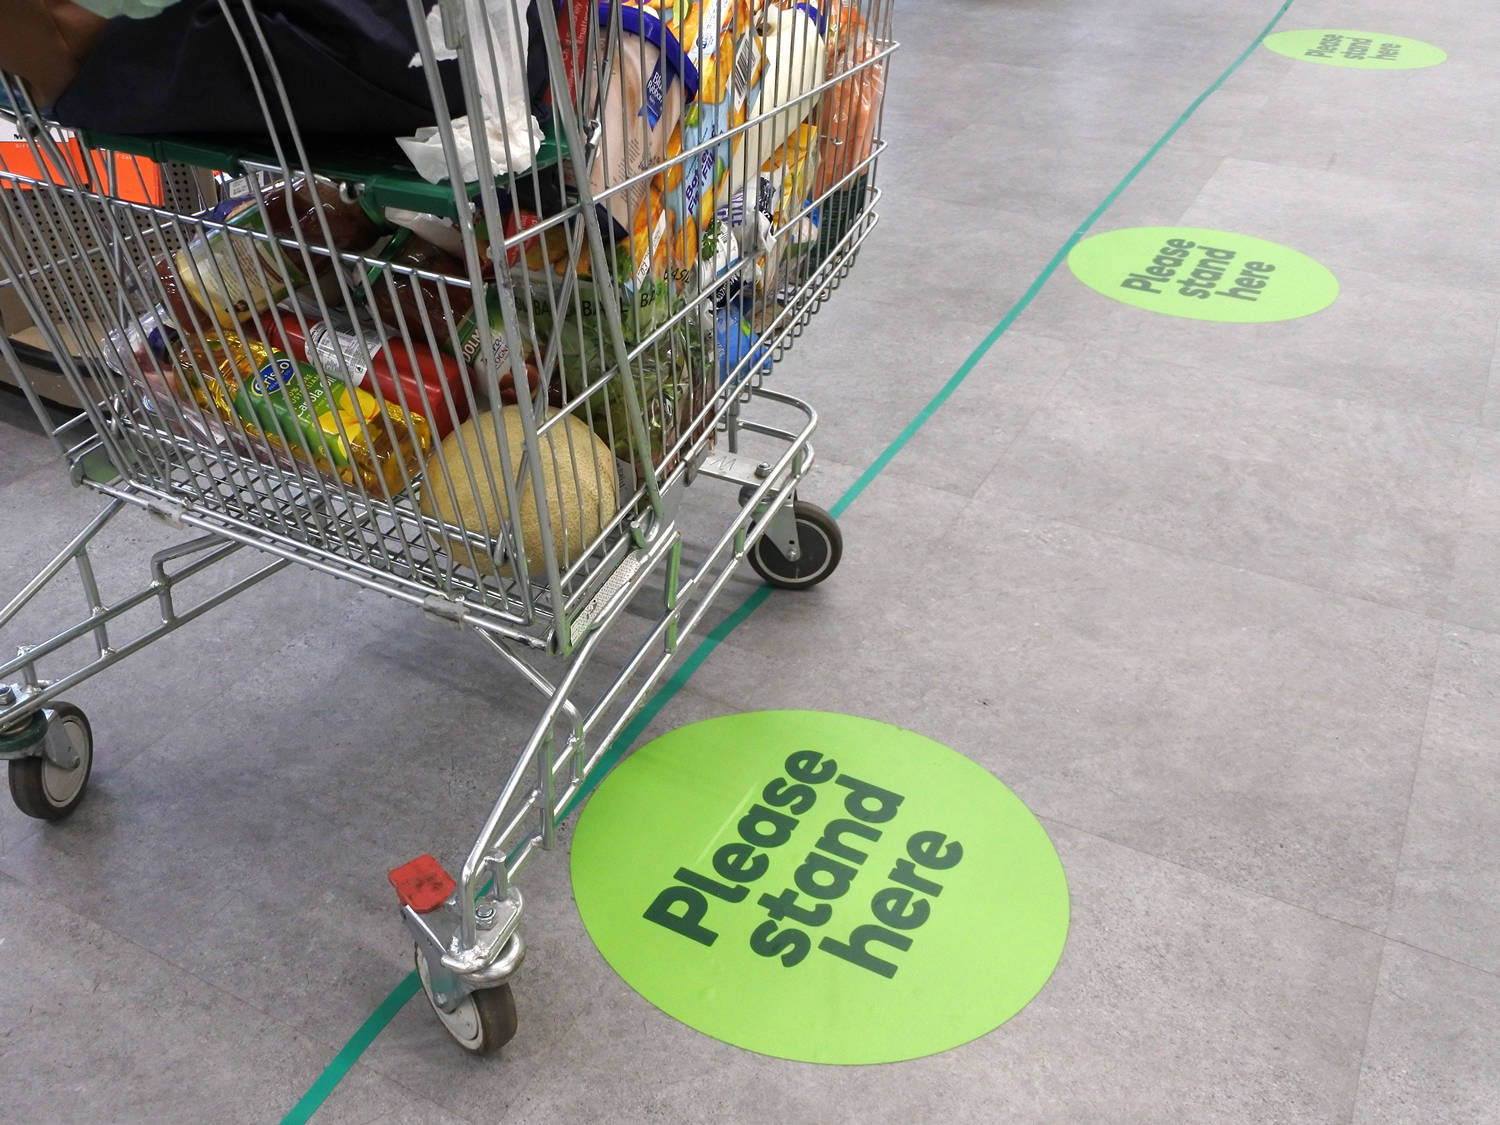 shopping cart in store with social-distancing markers